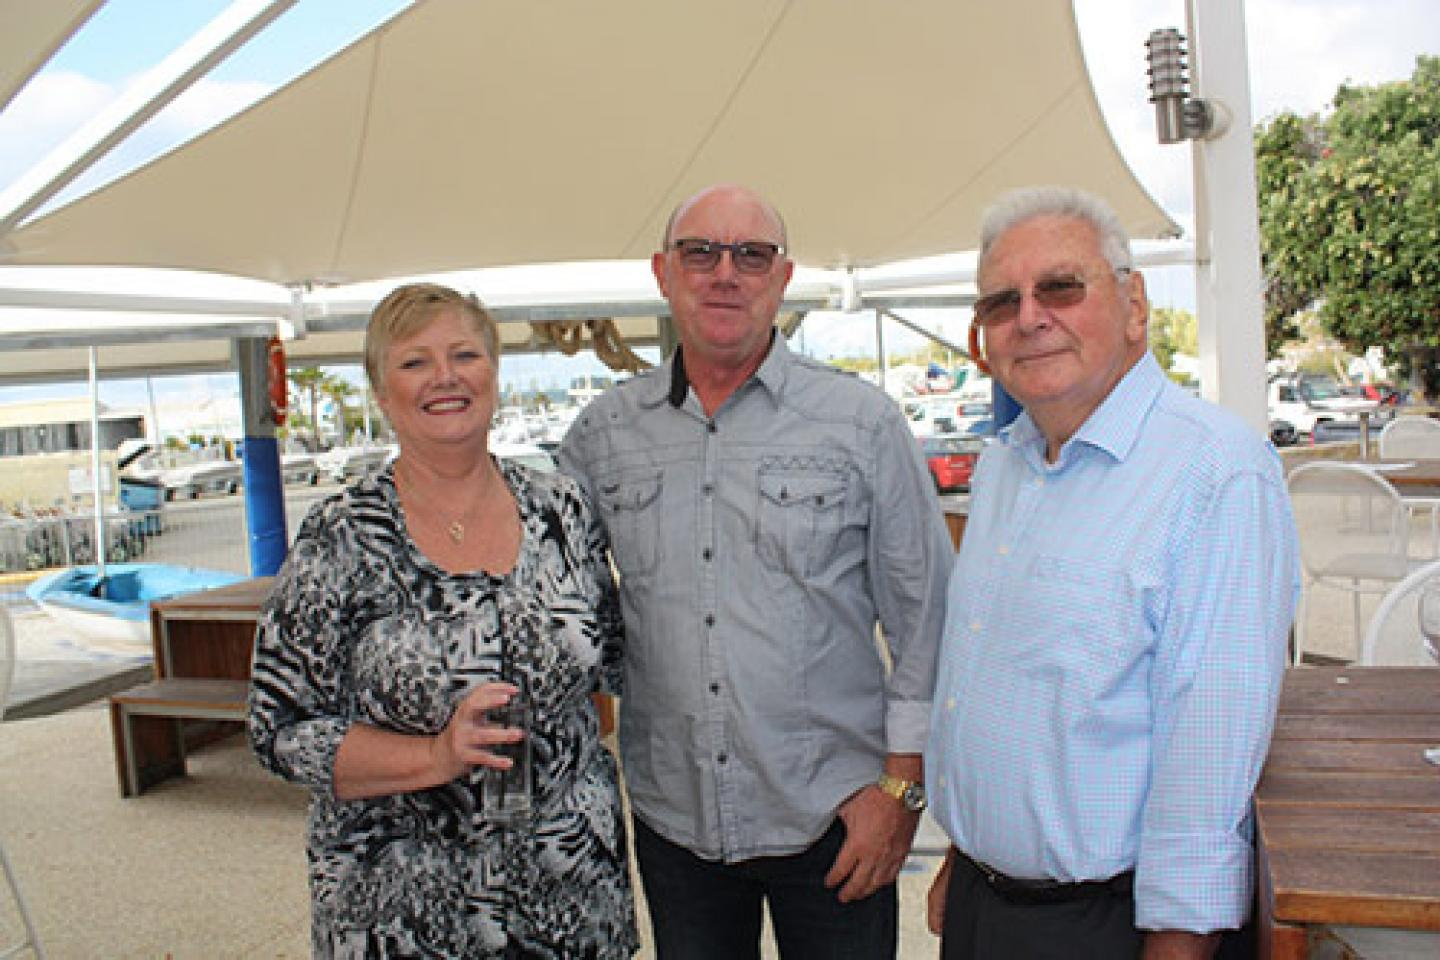 Ausplow Service Technician Dave Finlay (left), his partner Kady and Ausplow Managing Director John Ryan.